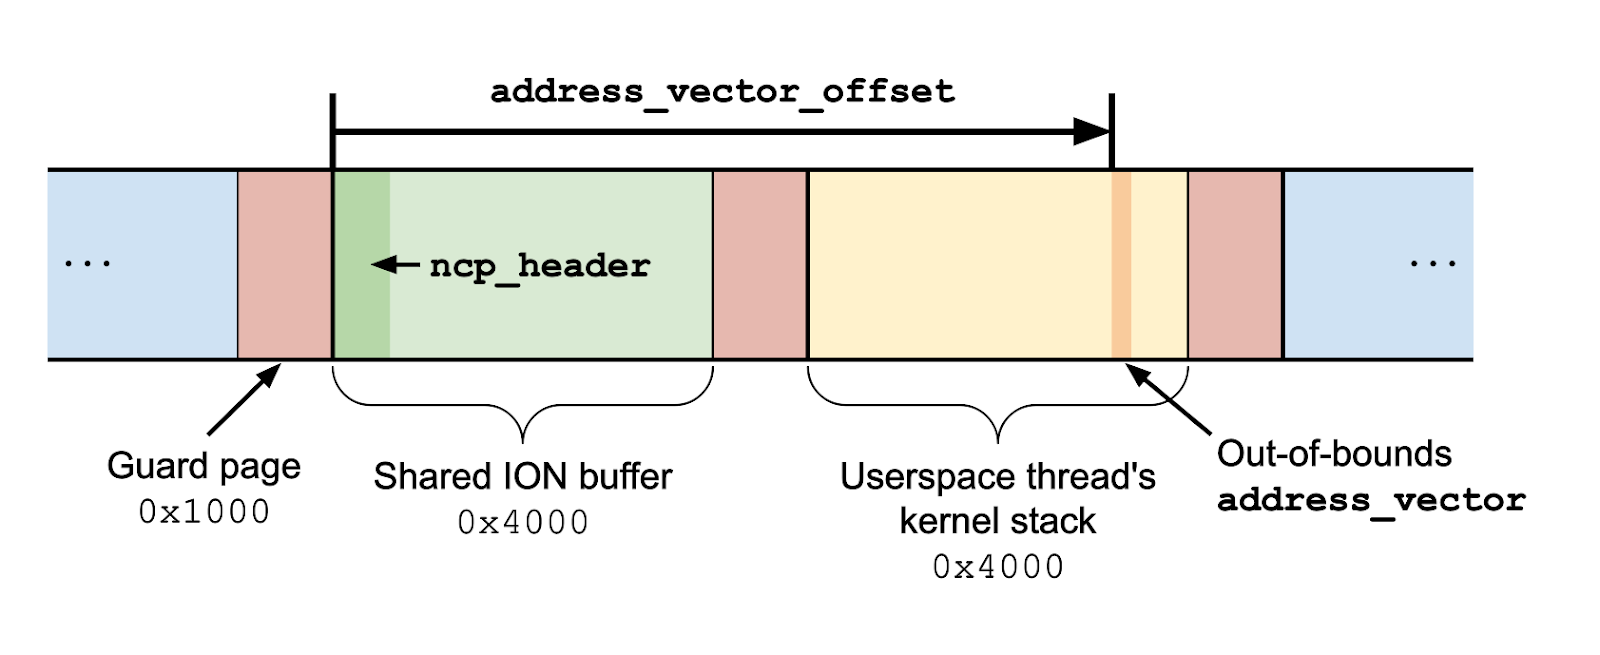 A diagram showing an ION buffer mapped directly before a userspace thread's kernel stack, with a guard page in between. The address_vector_offset is so large that it points past the end of the ION buffer and into the stack.